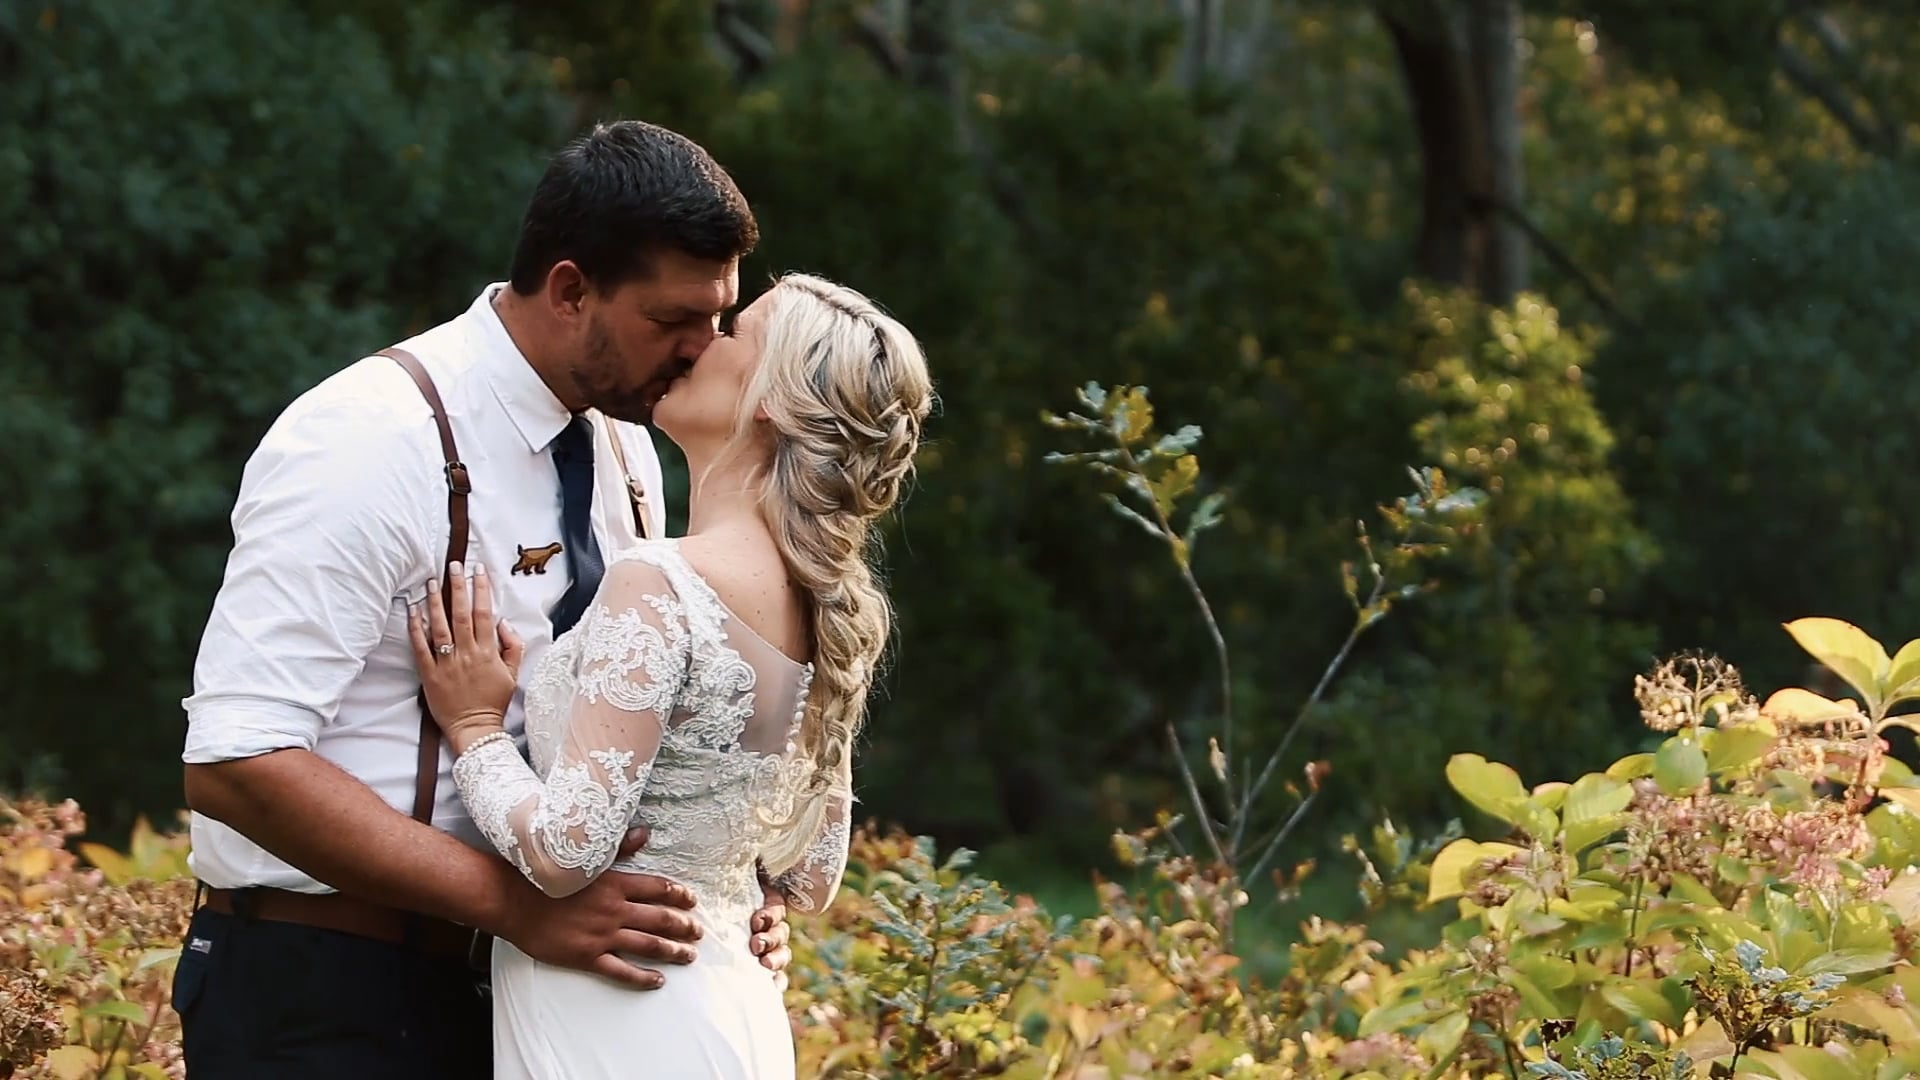 Charles and Michelle wedding preview, Beloftebos Stanford - 25 May 2019